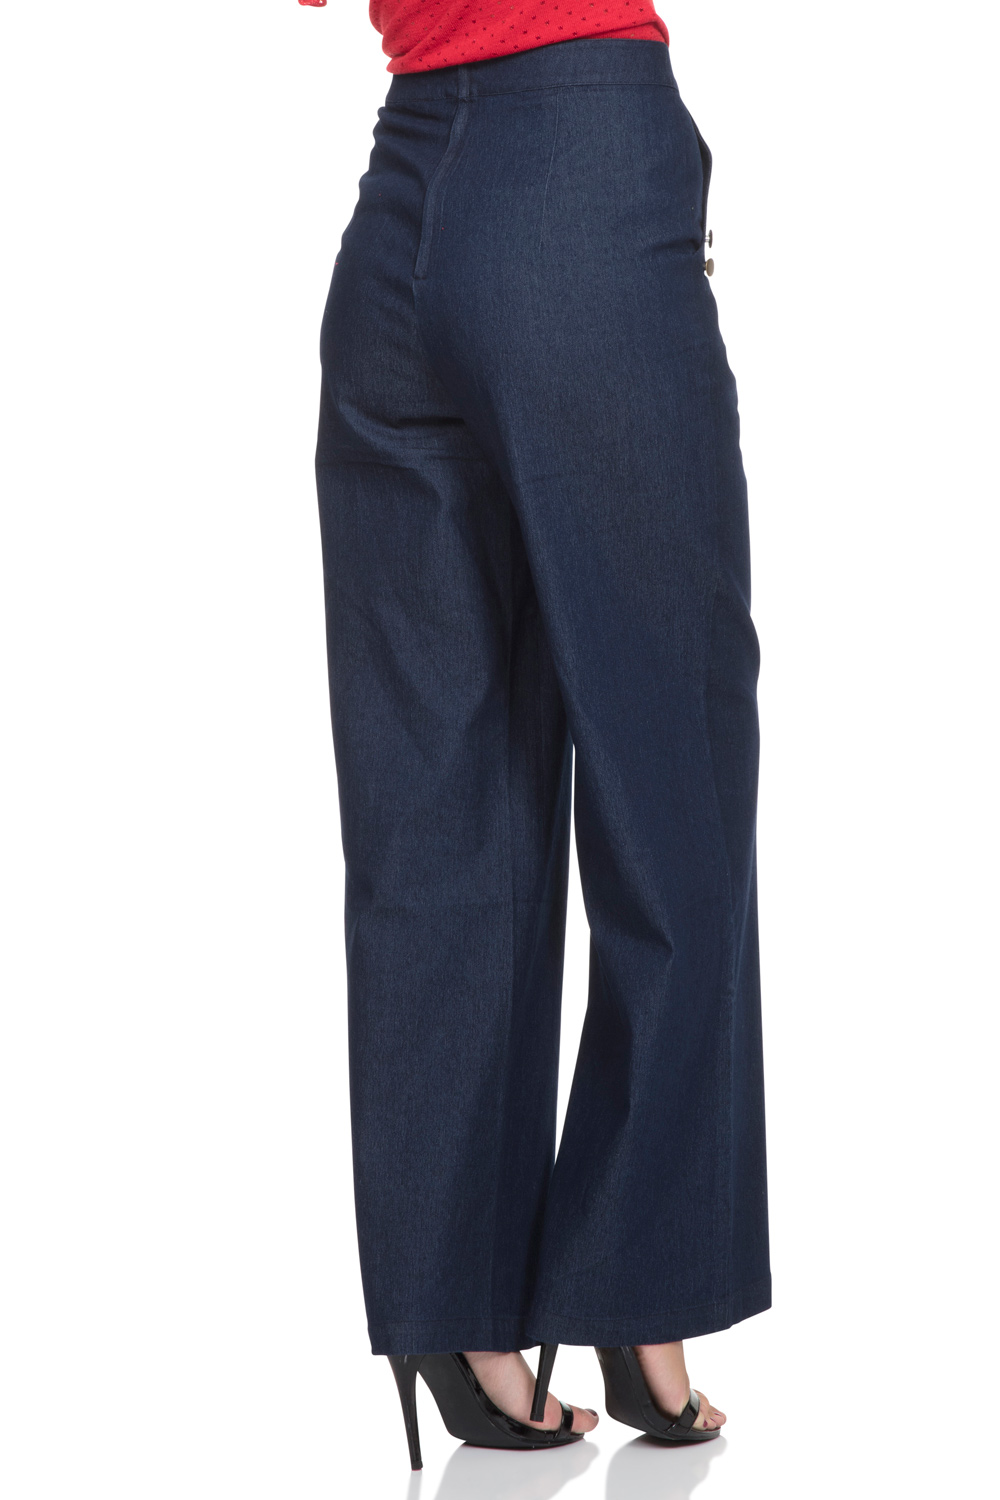 Samantha 40's style Denim Trousers